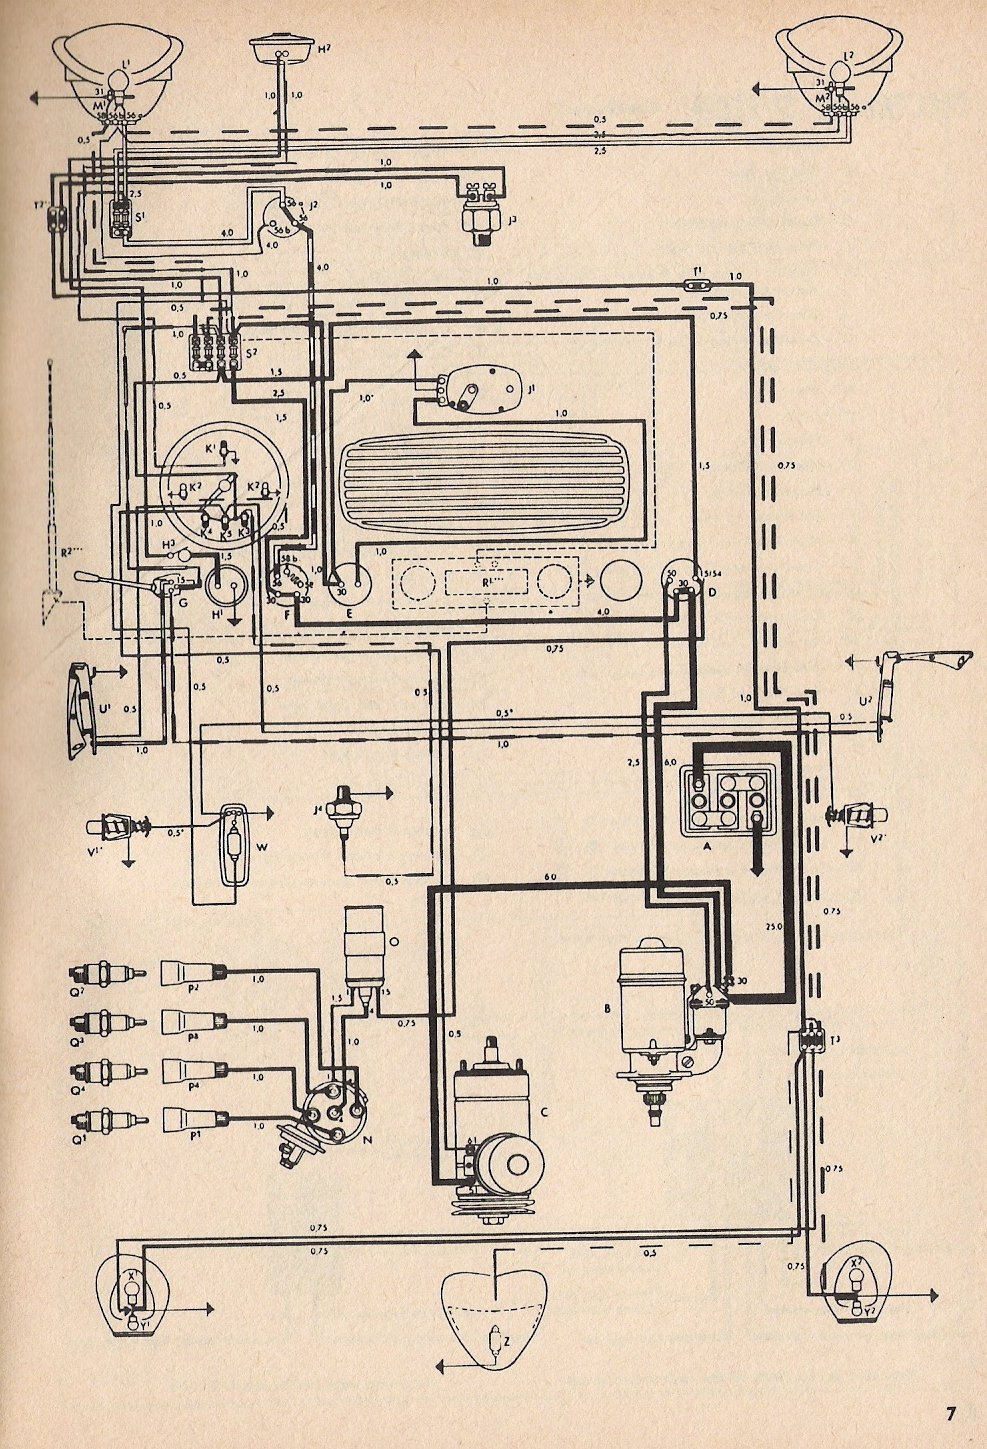 Type 1 Wiring Diagrams 1973 Chevy Truck Distributor Diagram